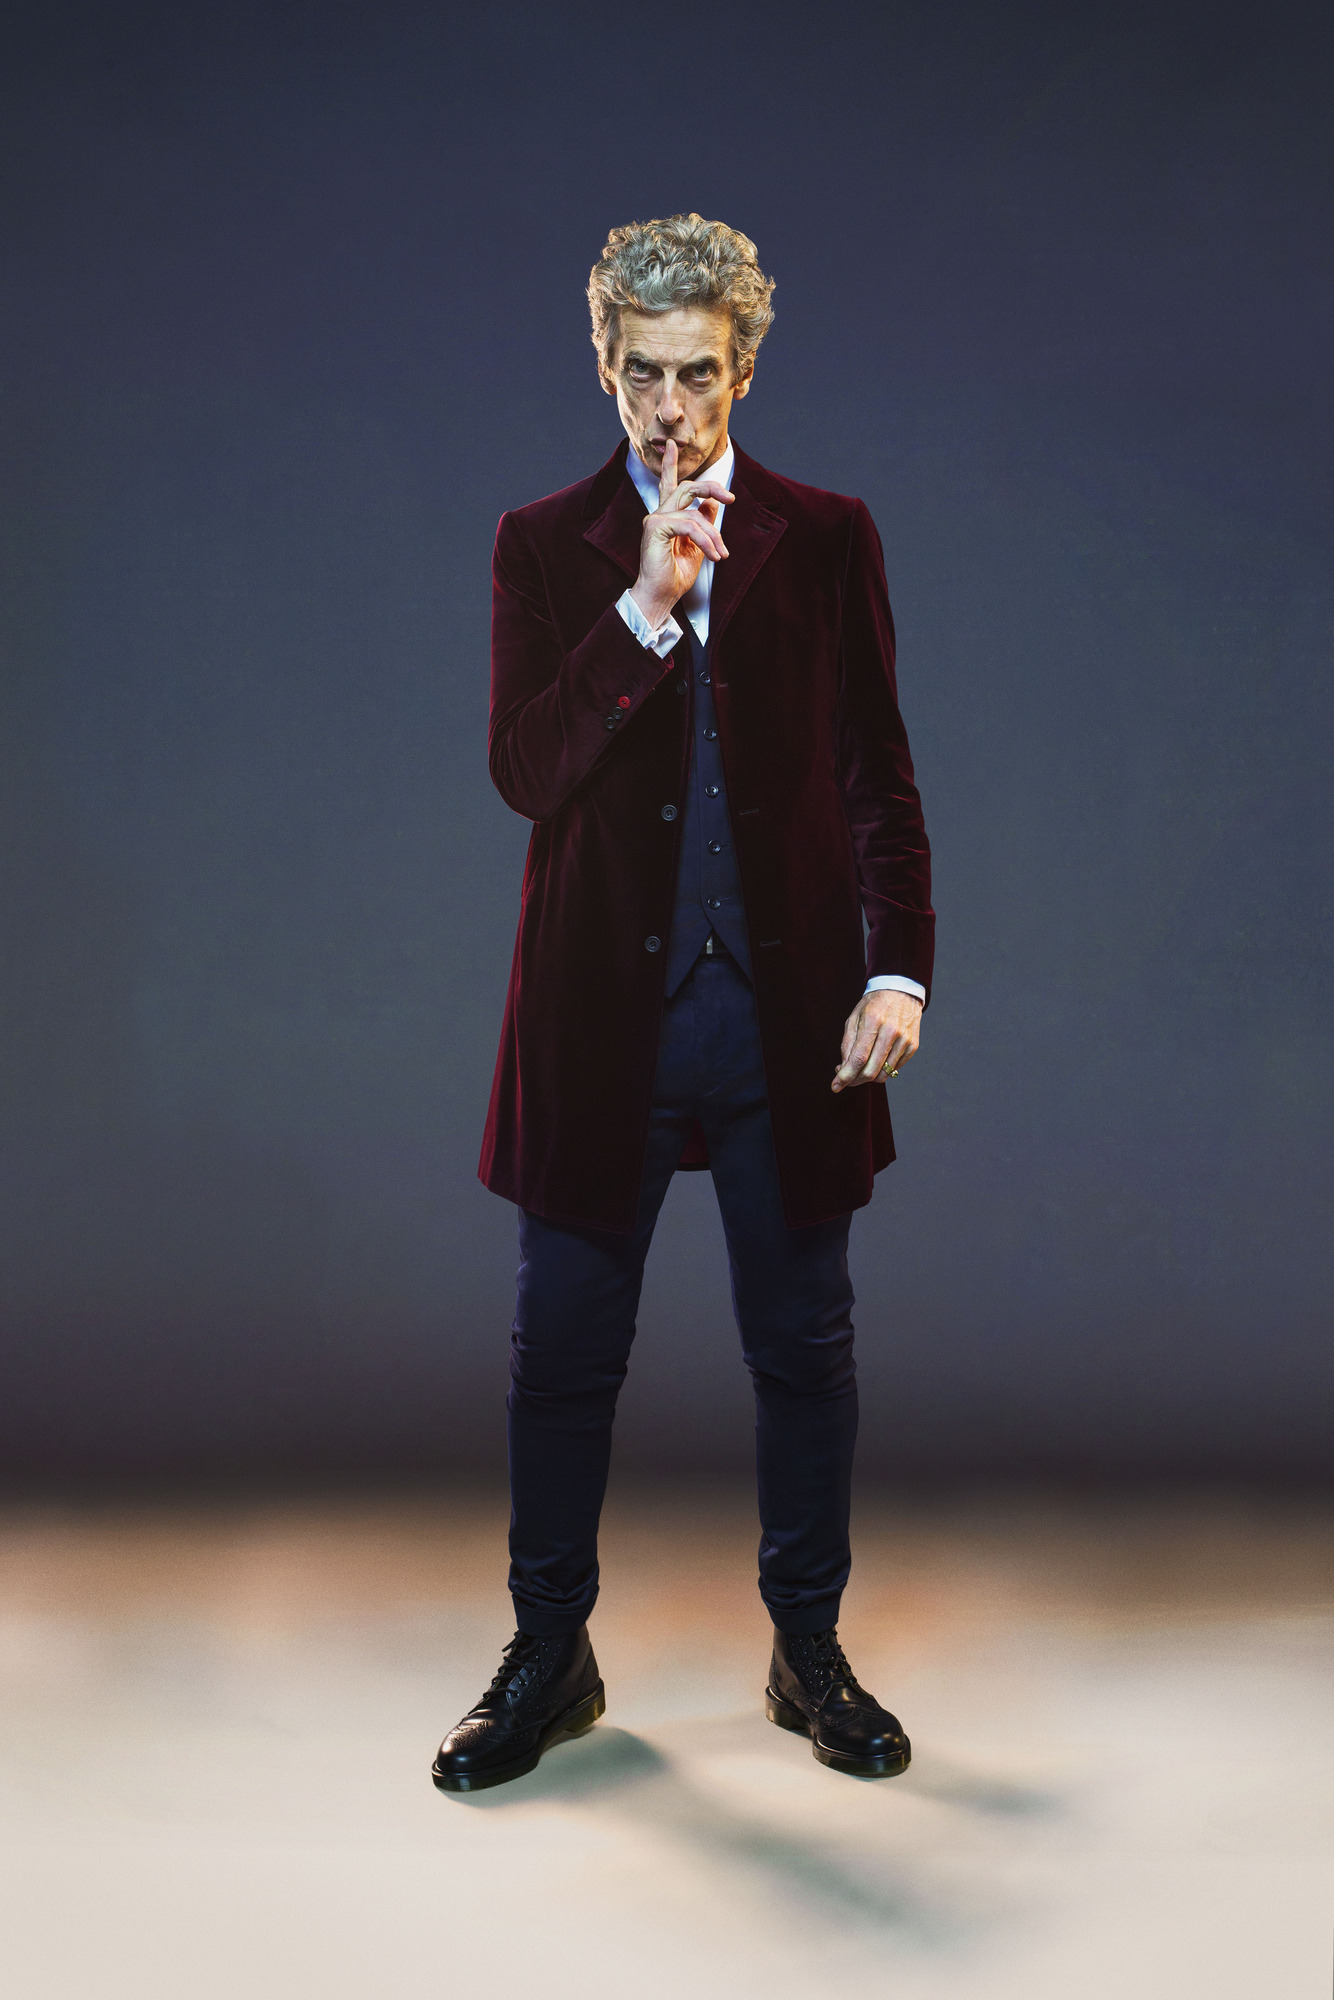 Peter Capaldi as The Doctor (Credit: BBC / David Venni)